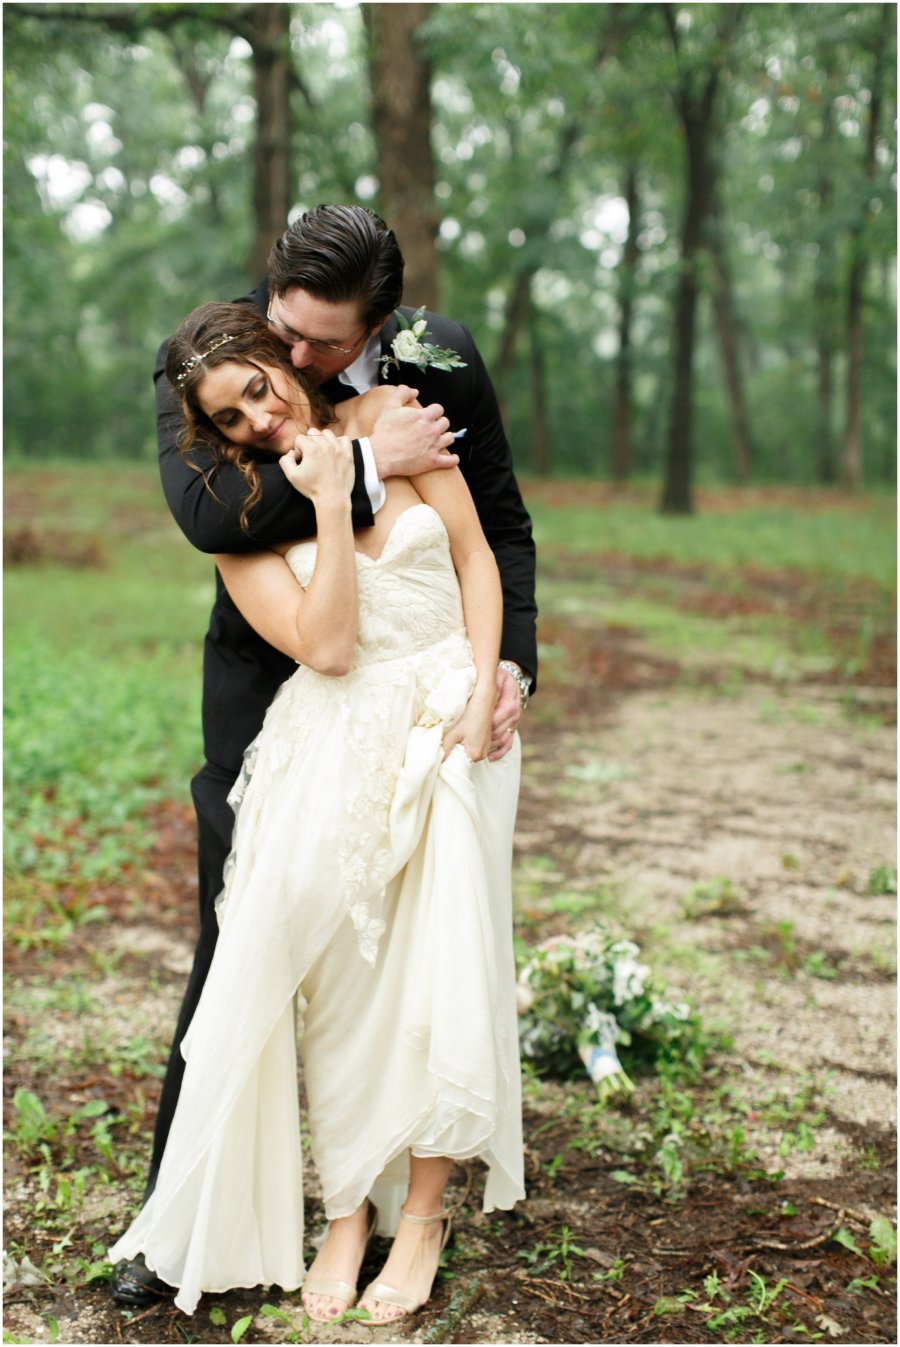 Alea Lovely Wedding Photographer